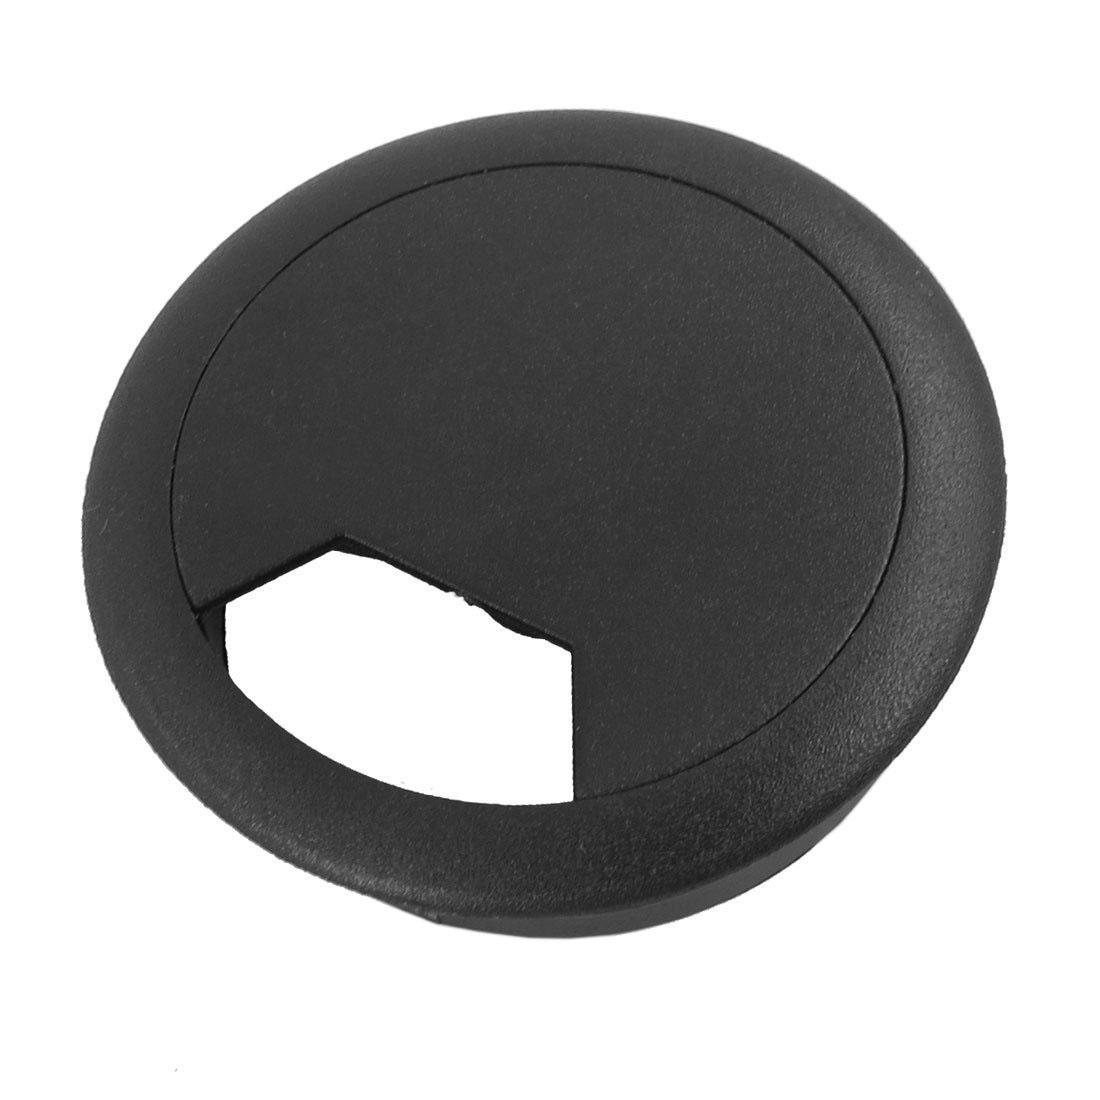 50mm Diameter Desk Wire Cord Cable Grommets Hole Cover Black From China Dhgate Com